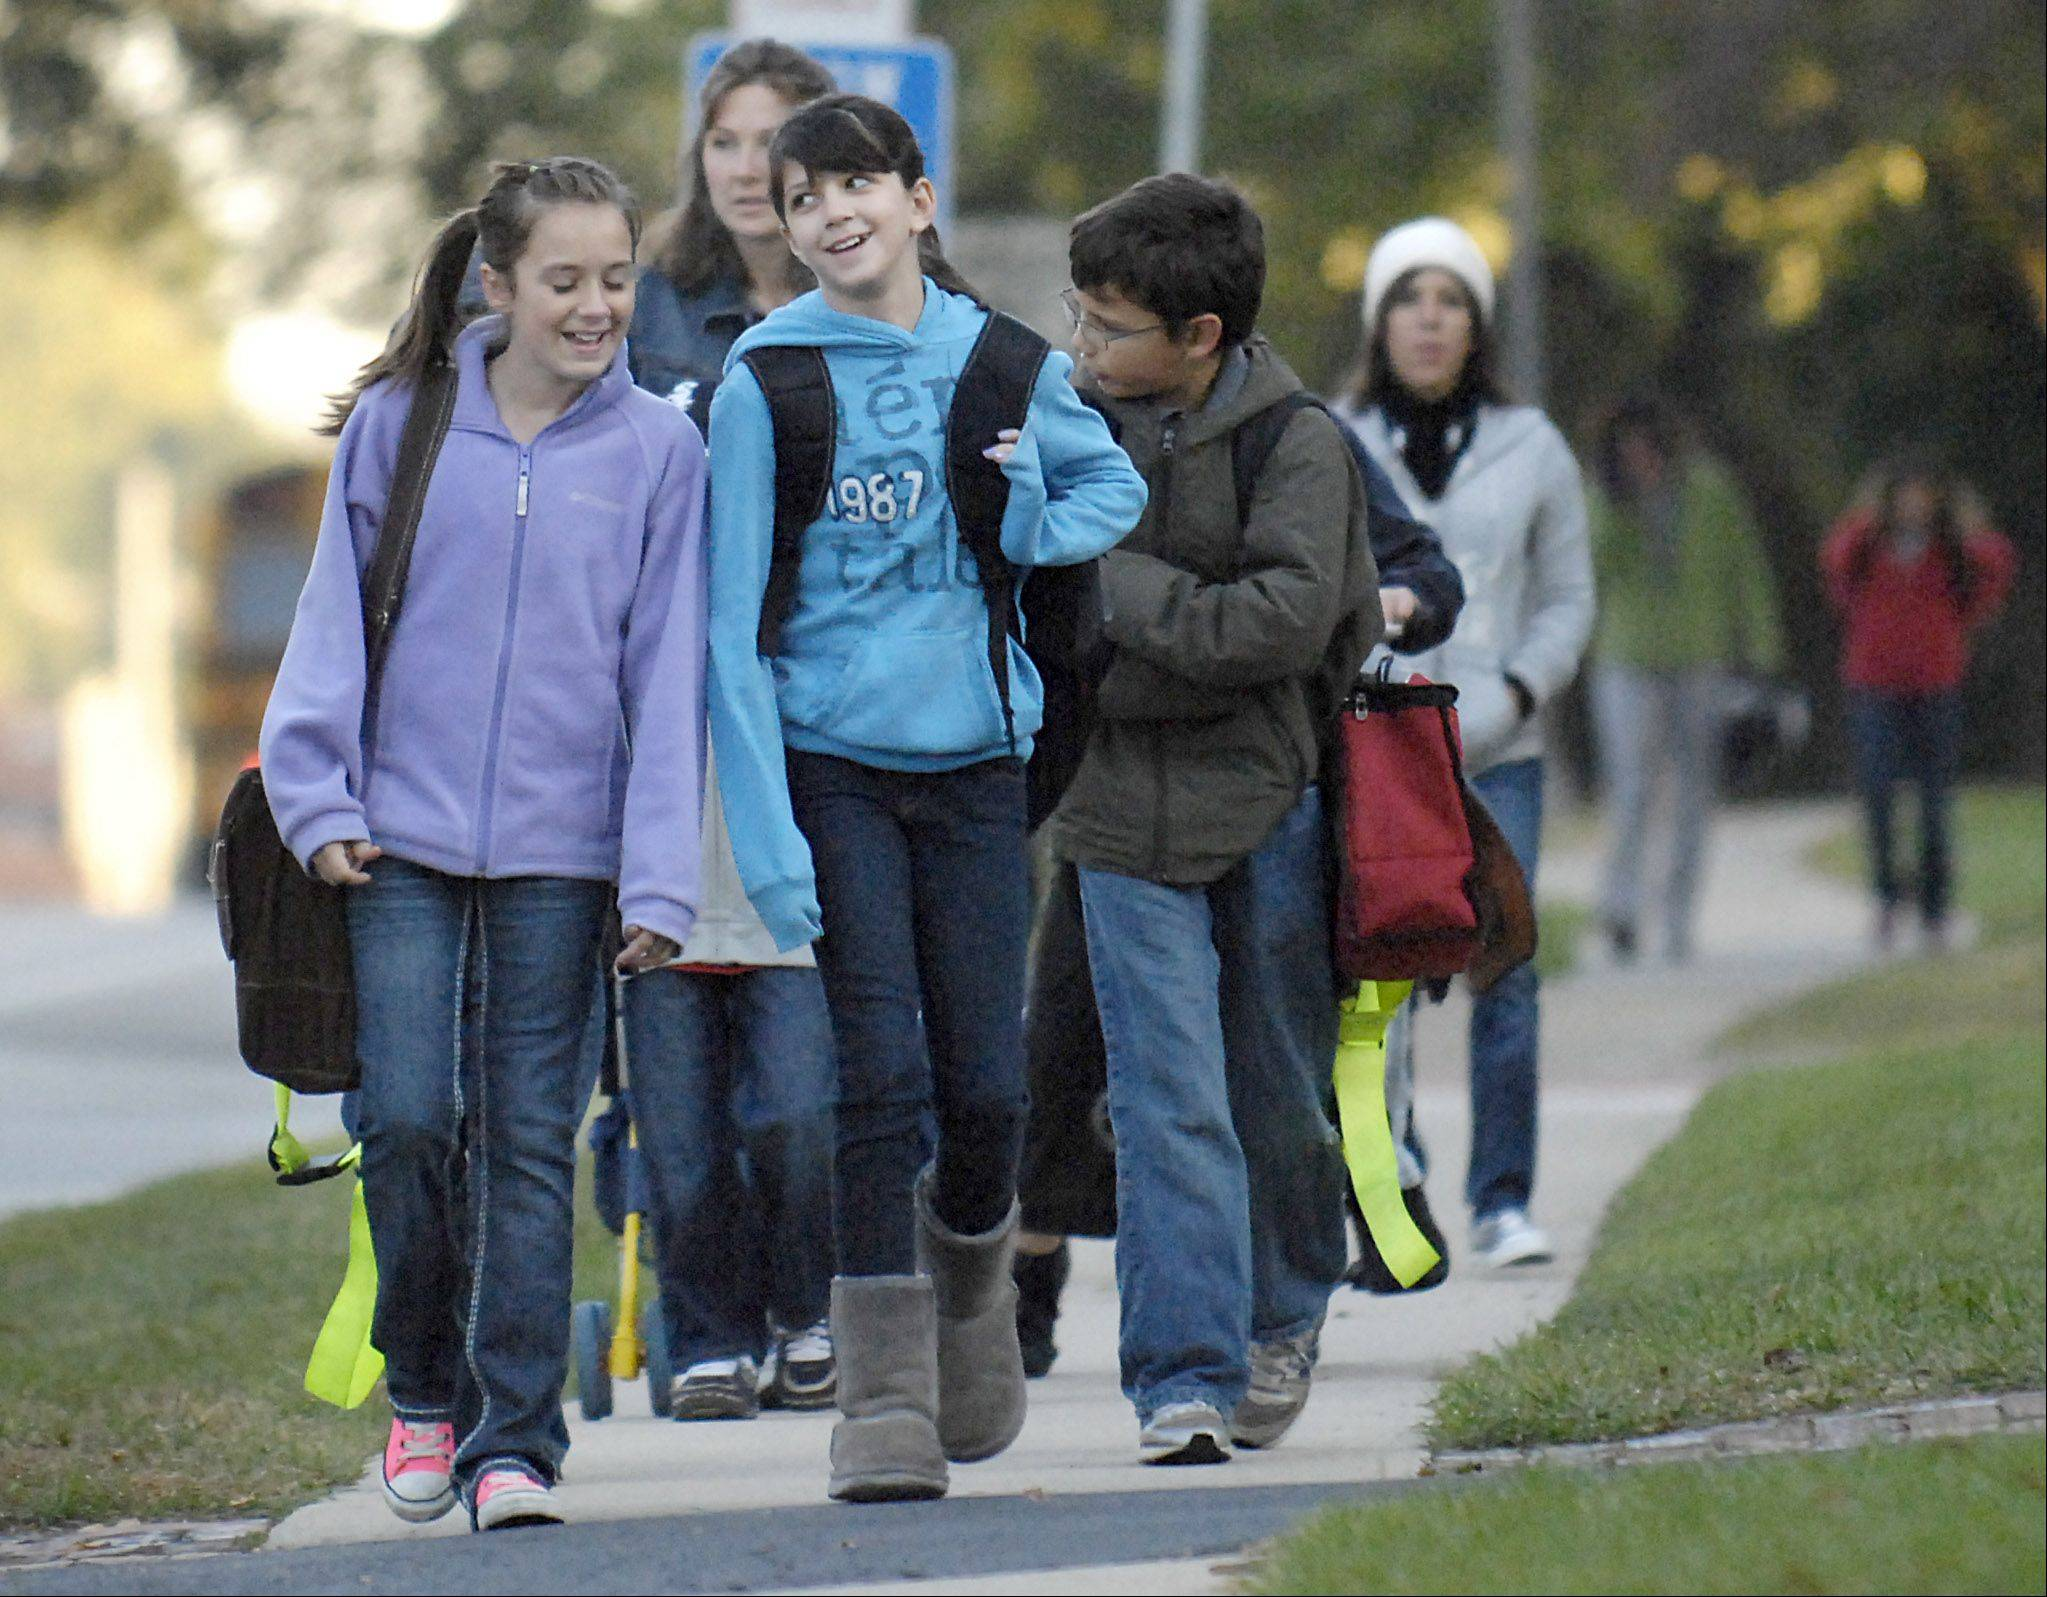 Harrison Elementary fifth-graders Olivia Tegge, left, and Holly Friedel, both 10, walk down East Side Drive in Geneva on their way to school on International Walk to School Day last year. This year's event is set for Wednesday, Oct. 5, throughout Kane County.